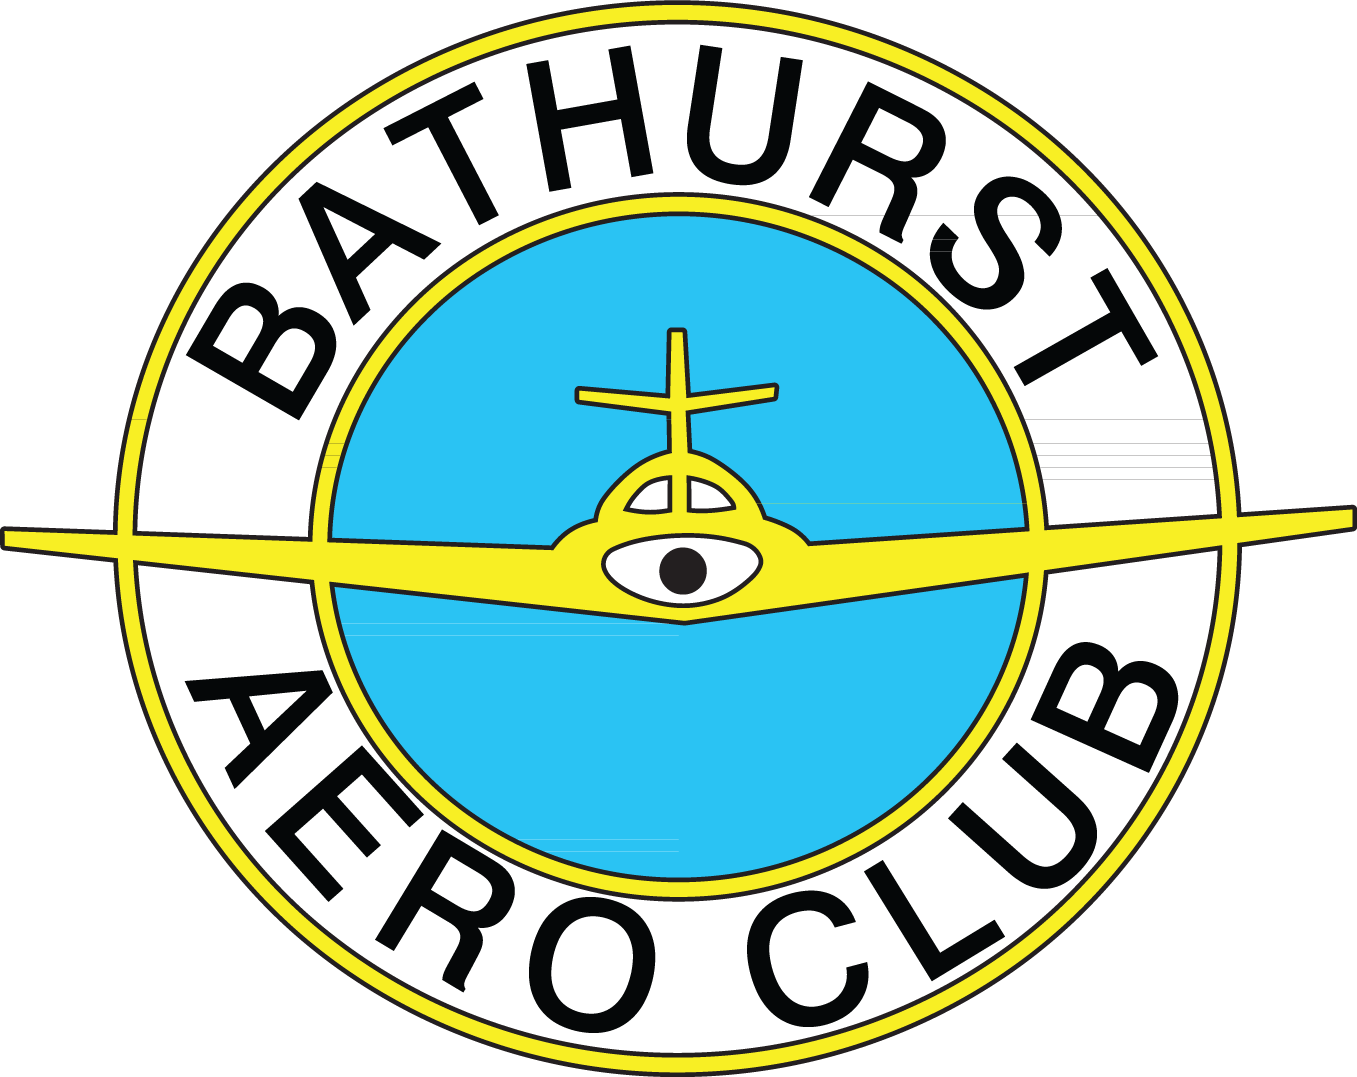 Bathurst Aero Club Ltd